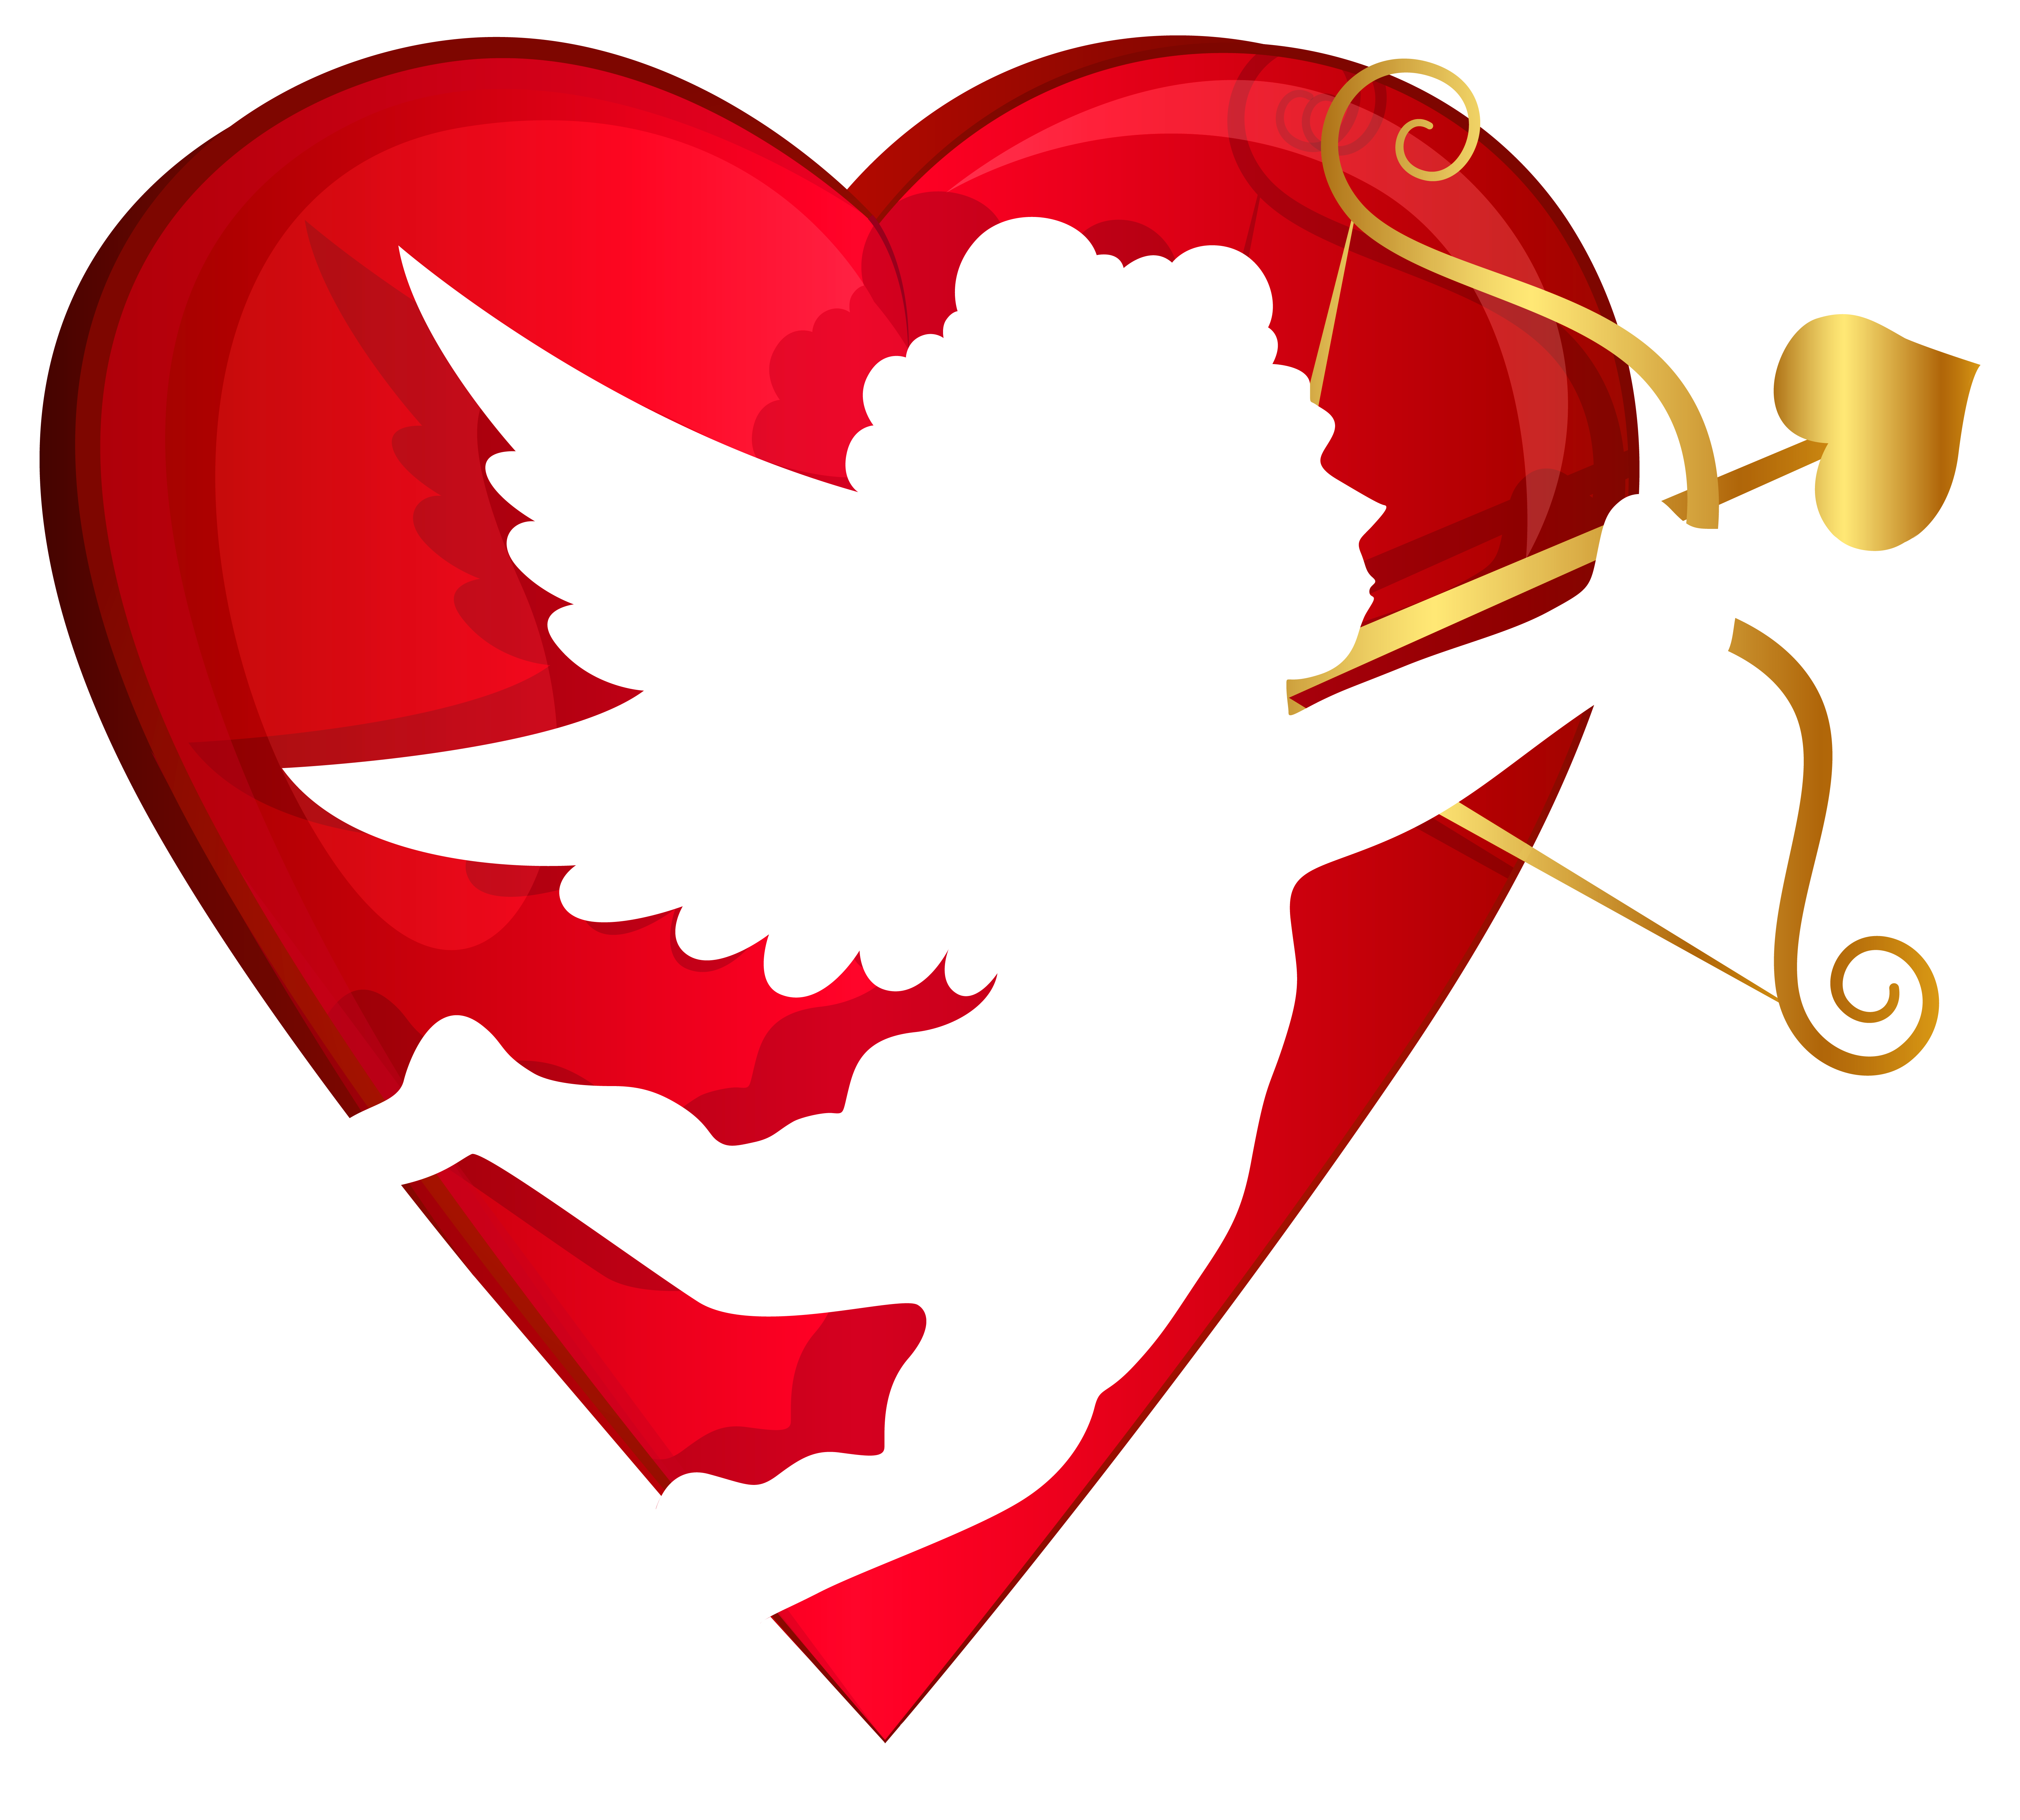 Cupid clipart. Red heart and transparent